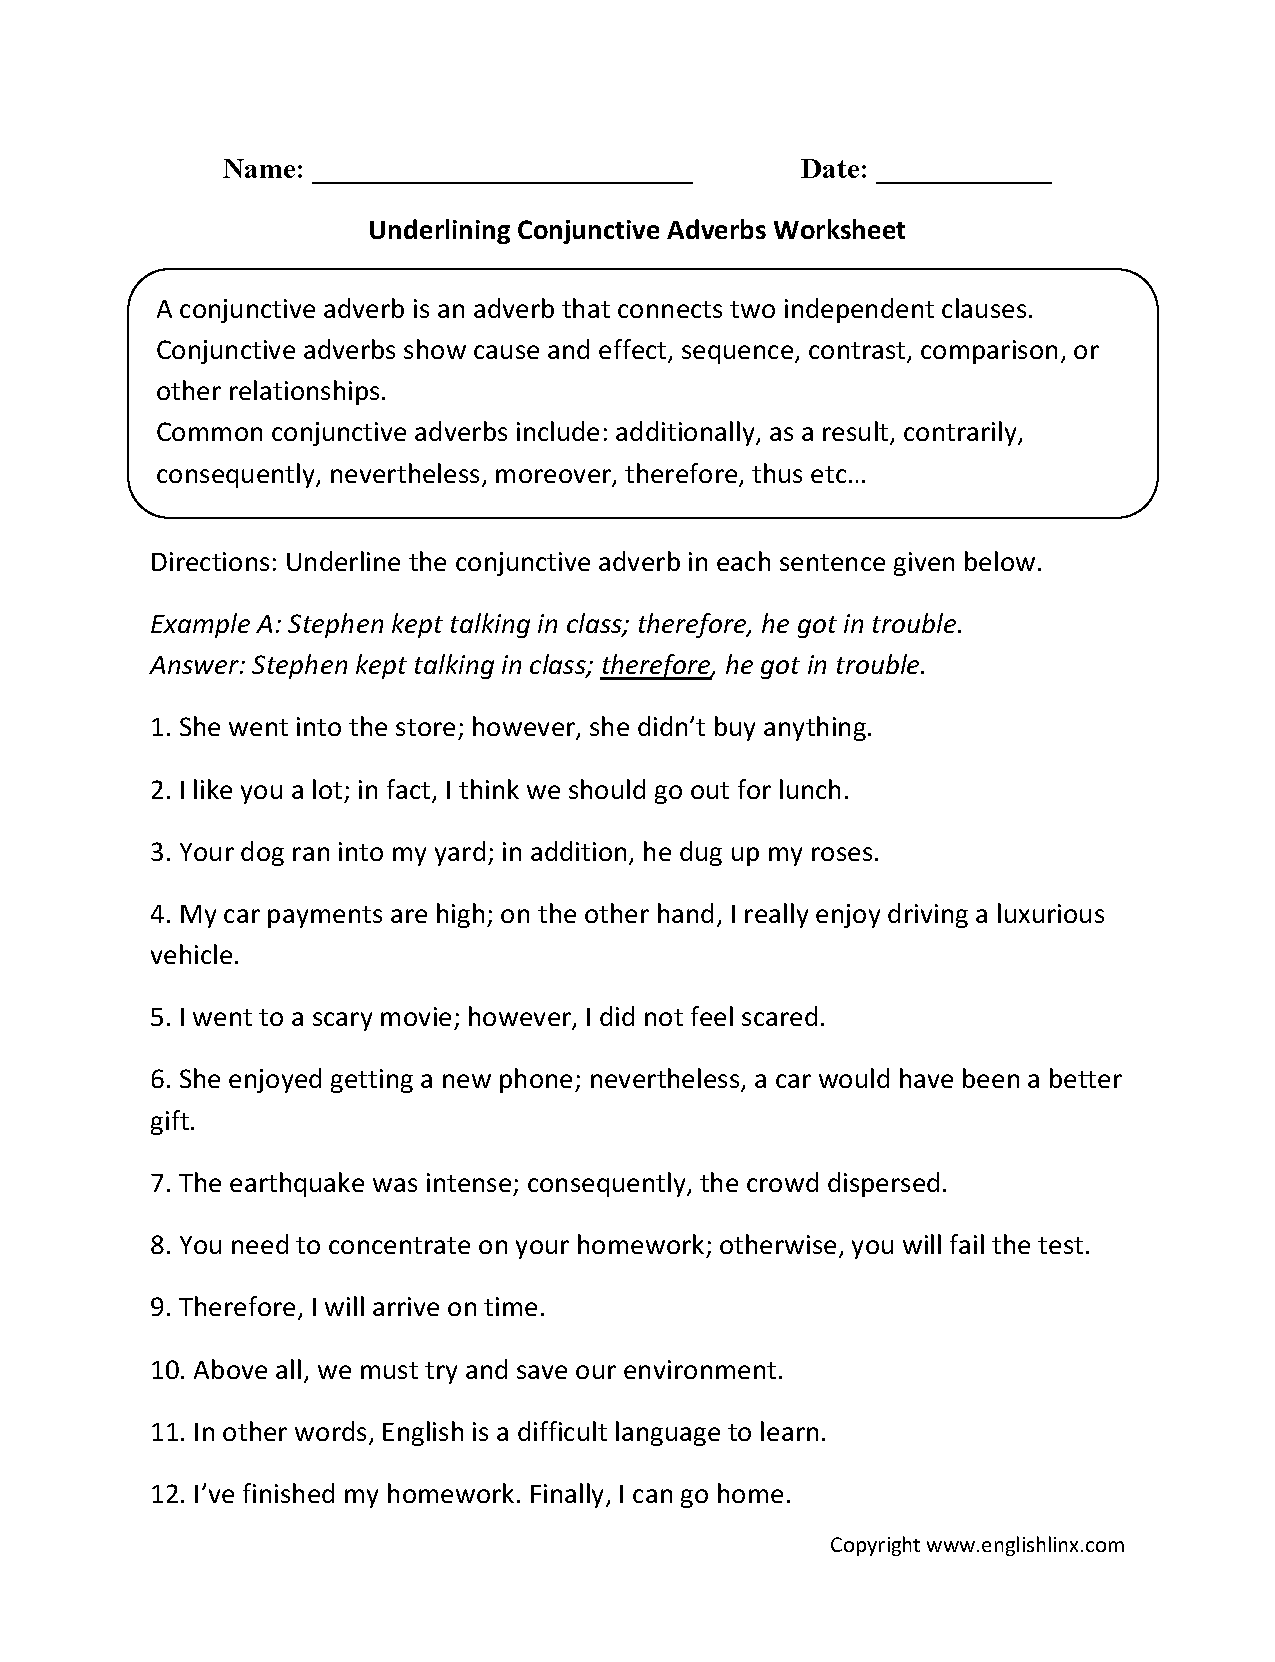 Weirdmailus  Marvelous Englishlinxcom  Conjunctions Worksheets With Engaging Worksheet With Agreeable Reflection Transformation Worksheet Also Predicate Nouns And Adjectives Worksheet In Addition Brain Dissection Worksheet And Worksheets On Quadrilaterals As Well As Areas Of Triangles Worksheet Additionally Hiragana Practice Worksheets From Englishlinxcom With Weirdmailus  Engaging Englishlinxcom  Conjunctions Worksheets With Agreeable Worksheet And Marvelous Reflection Transformation Worksheet Also Predicate Nouns And Adjectives Worksheet In Addition Brain Dissection Worksheet From Englishlinxcom